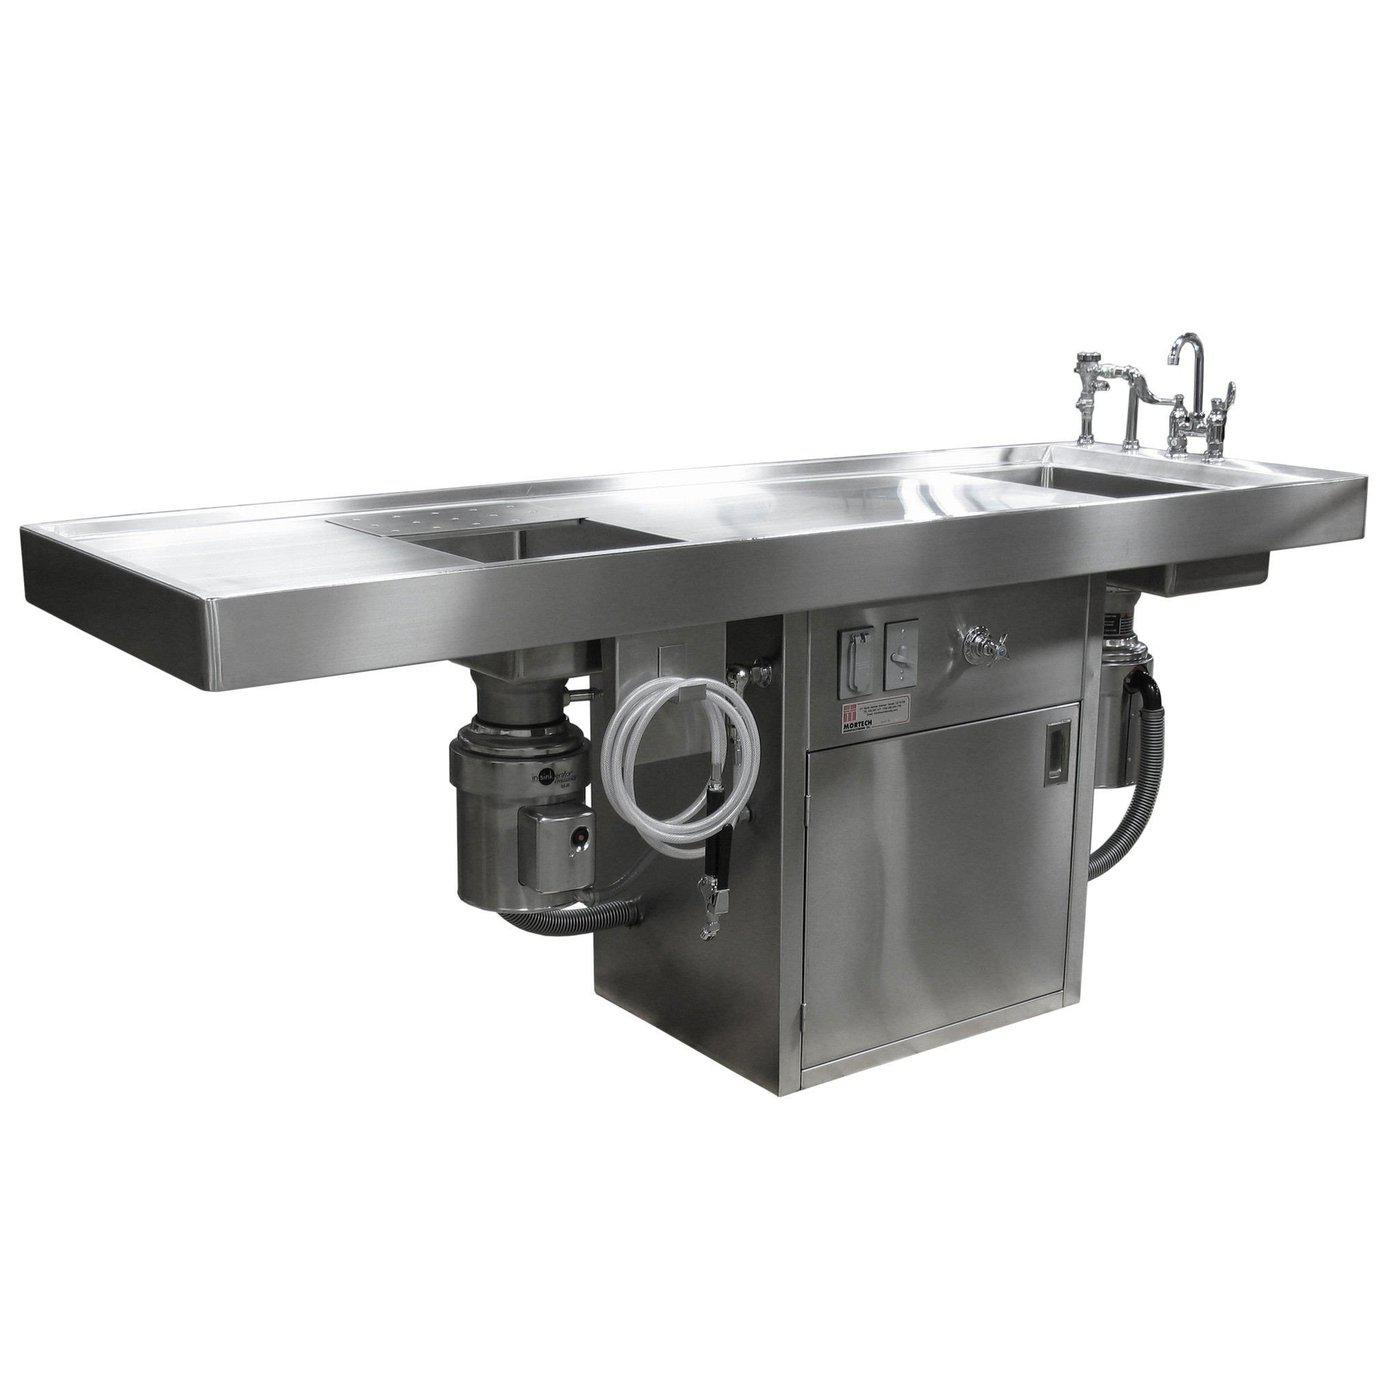 Medium Size Necropsy Station-Necropsy Dissection Tables-Mortech Manufacturing Company Inc. Quality Stainless Steel Autopsy, Morgue, Funeral Home, Necropsy, Veterinary / Anatomy, Dissection Equipment and Accessories